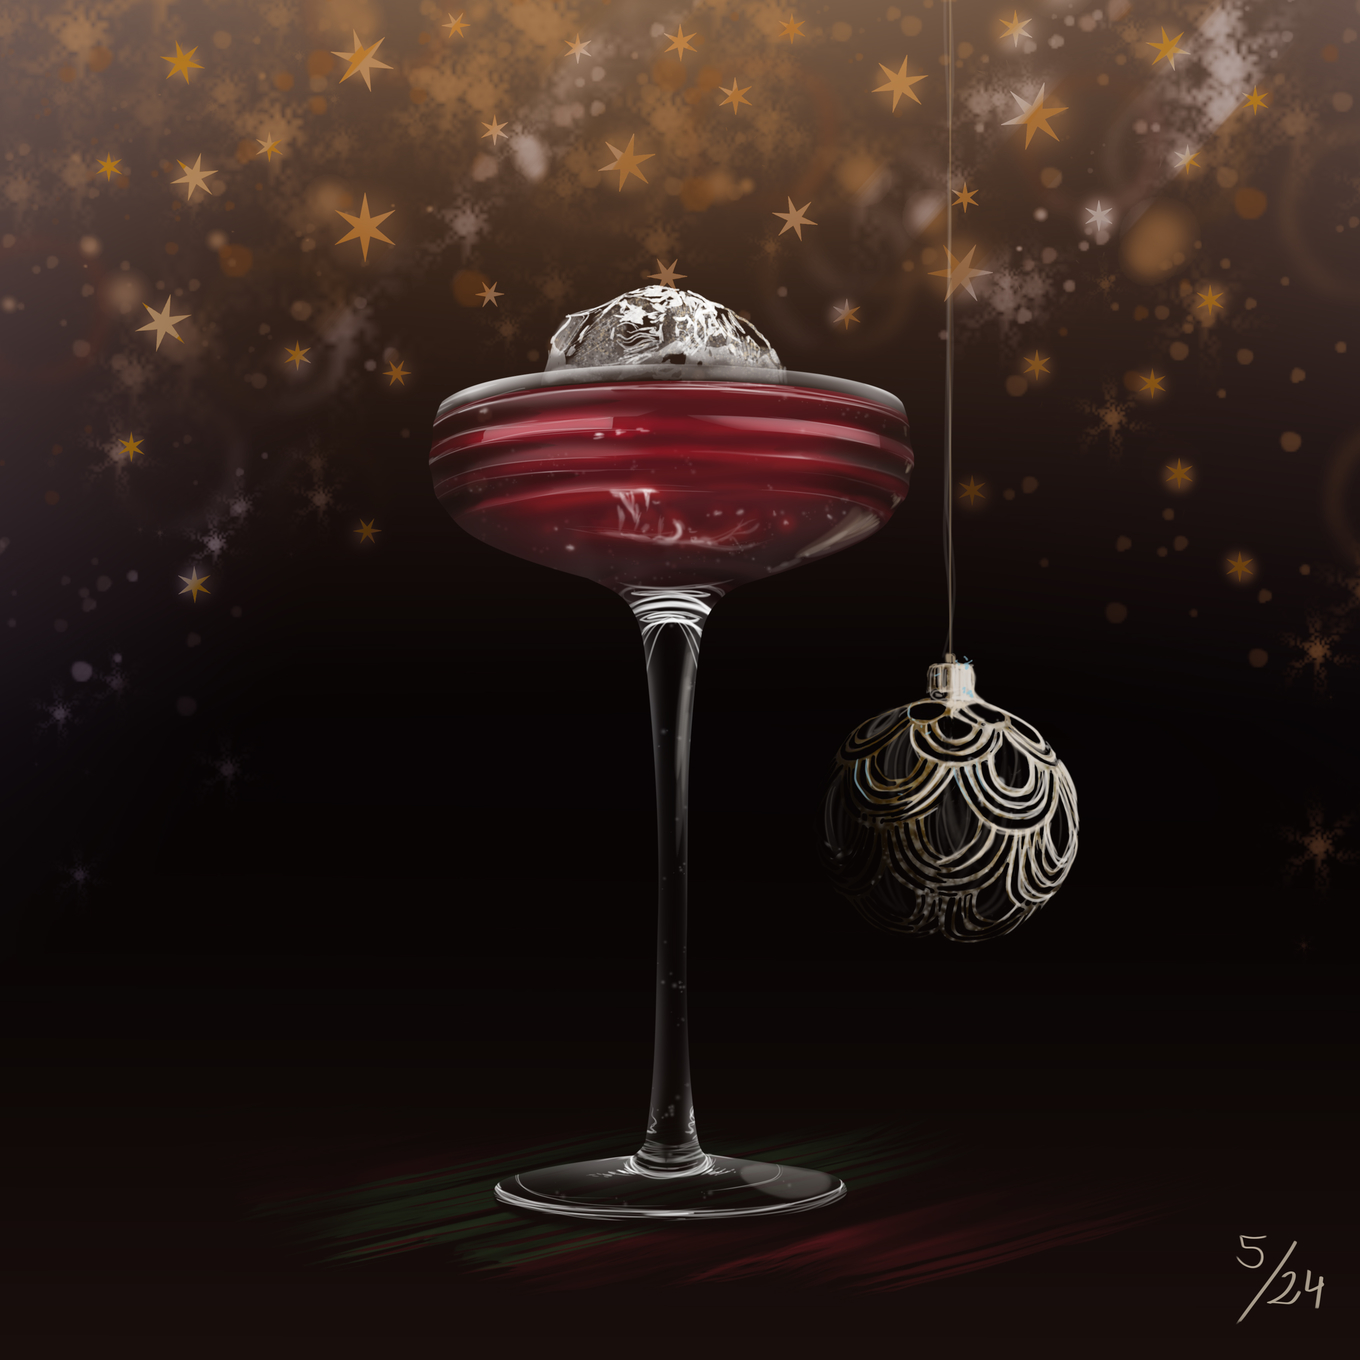 Crimbo Cocktail Calendar 5/24 image 1